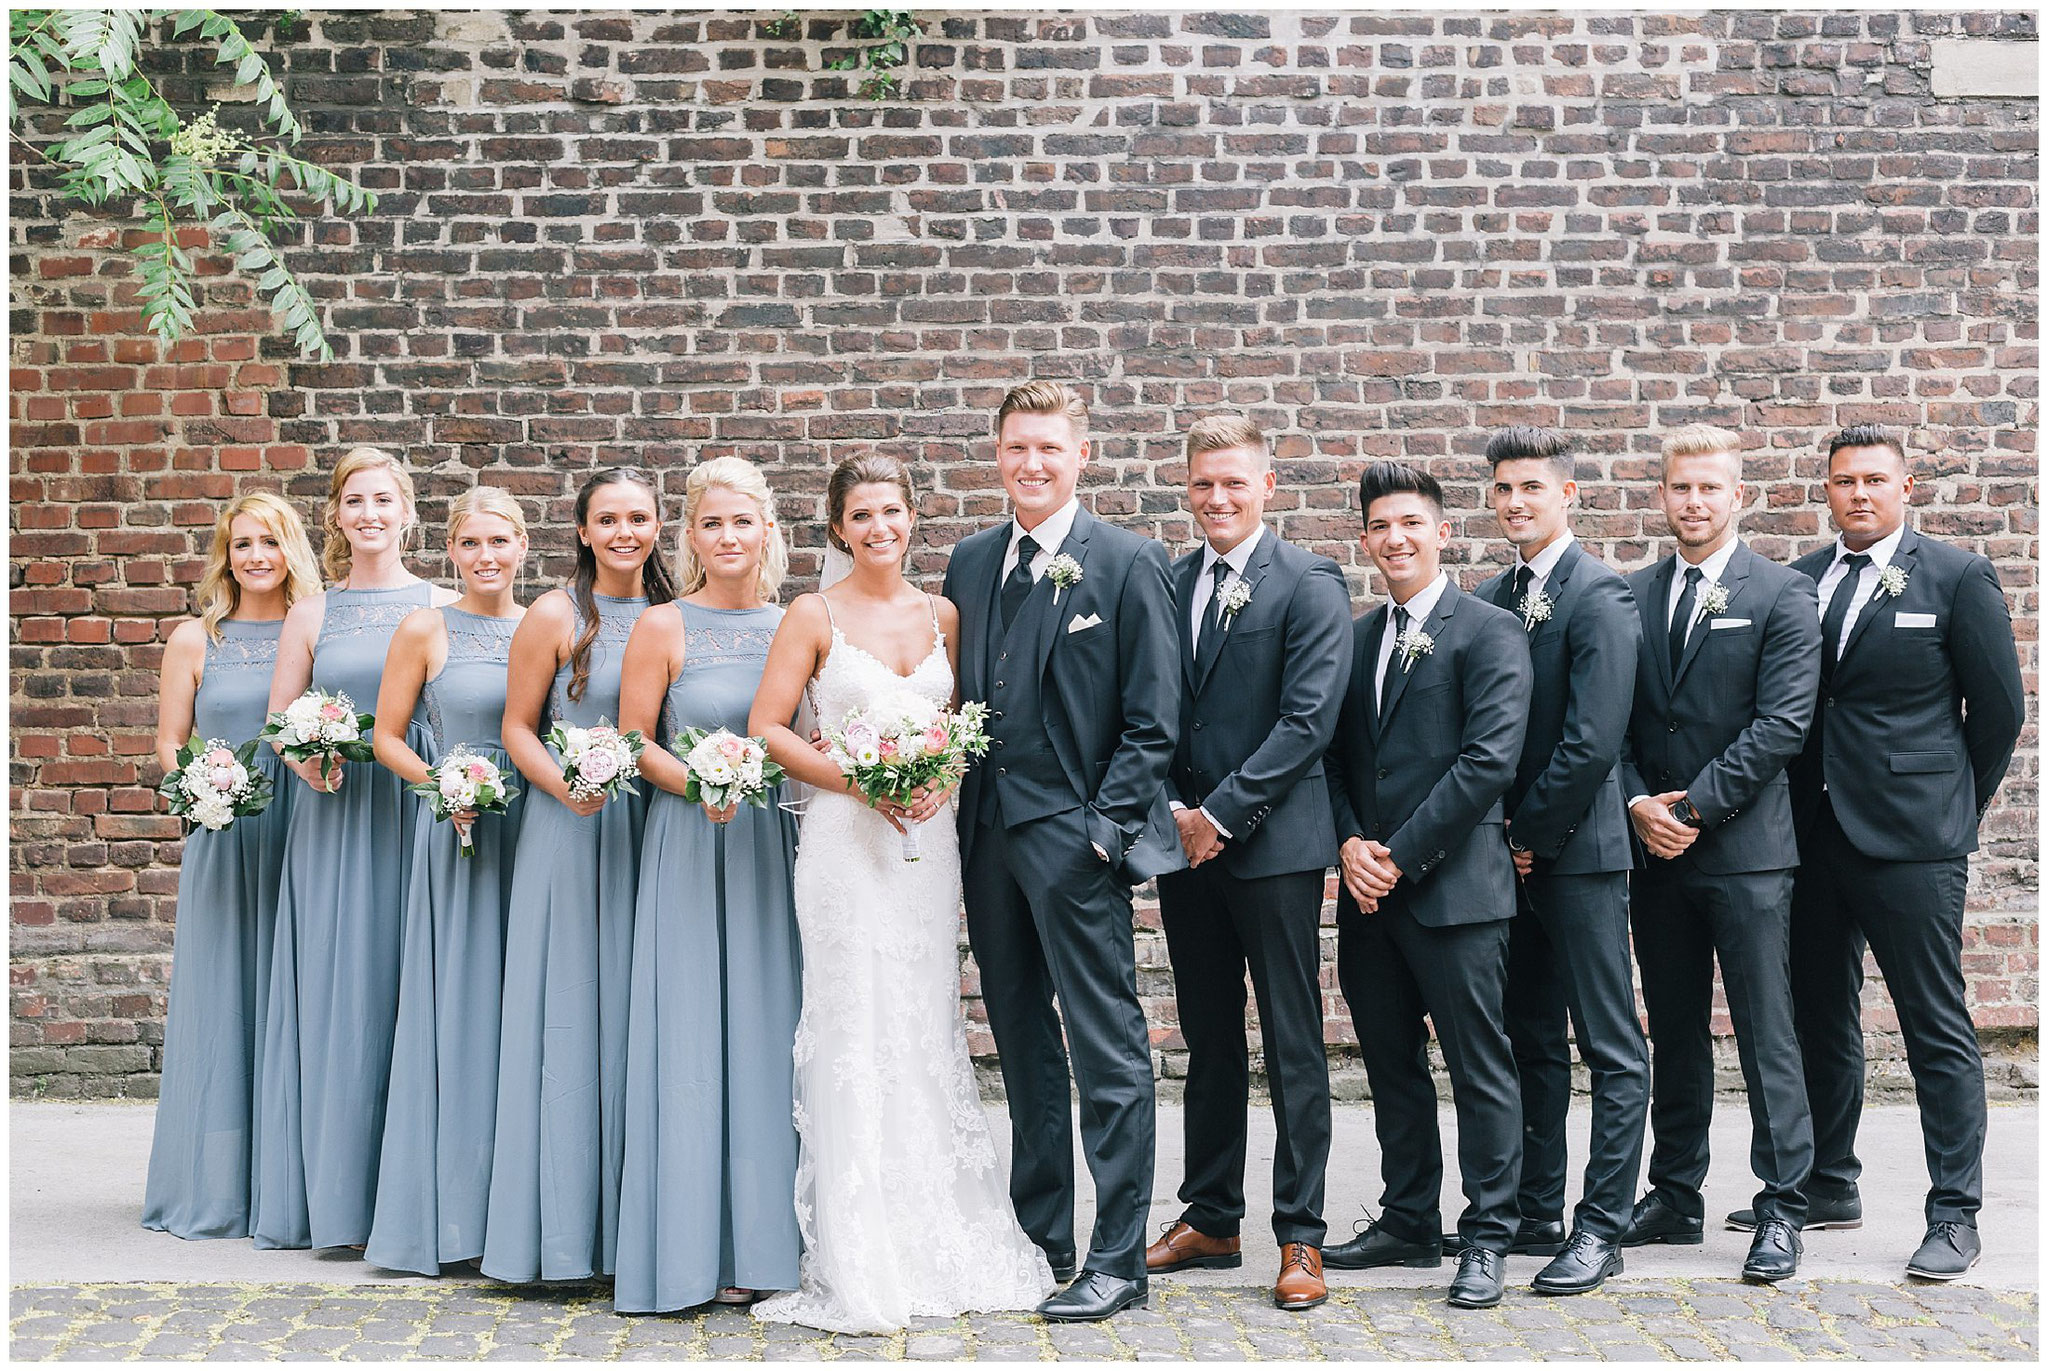 fine art hochzeit Gruppenbild bridalgang weddingparty best men groomsmen brautjungfern bridesmaids